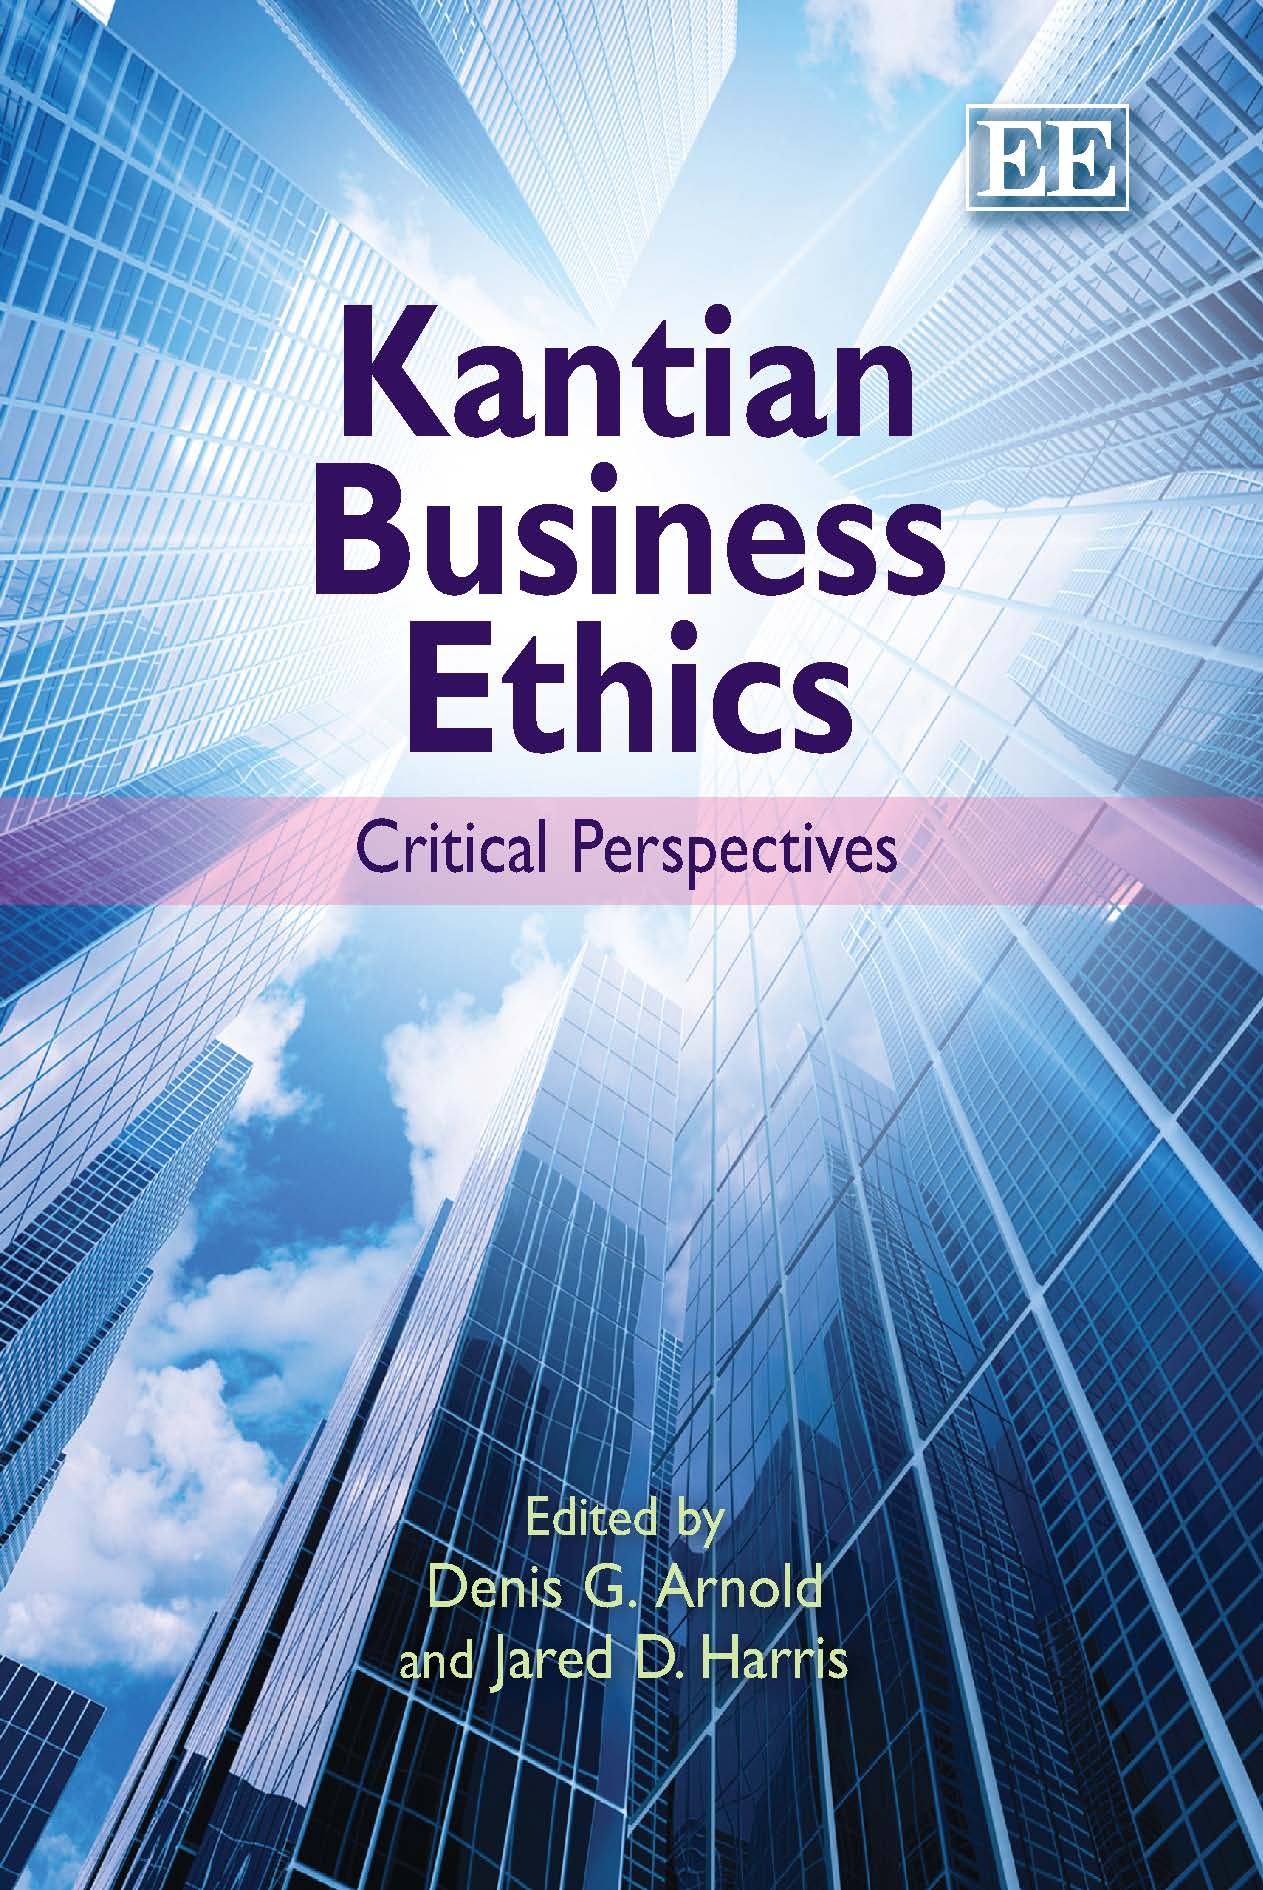 Kantian Business Ethics